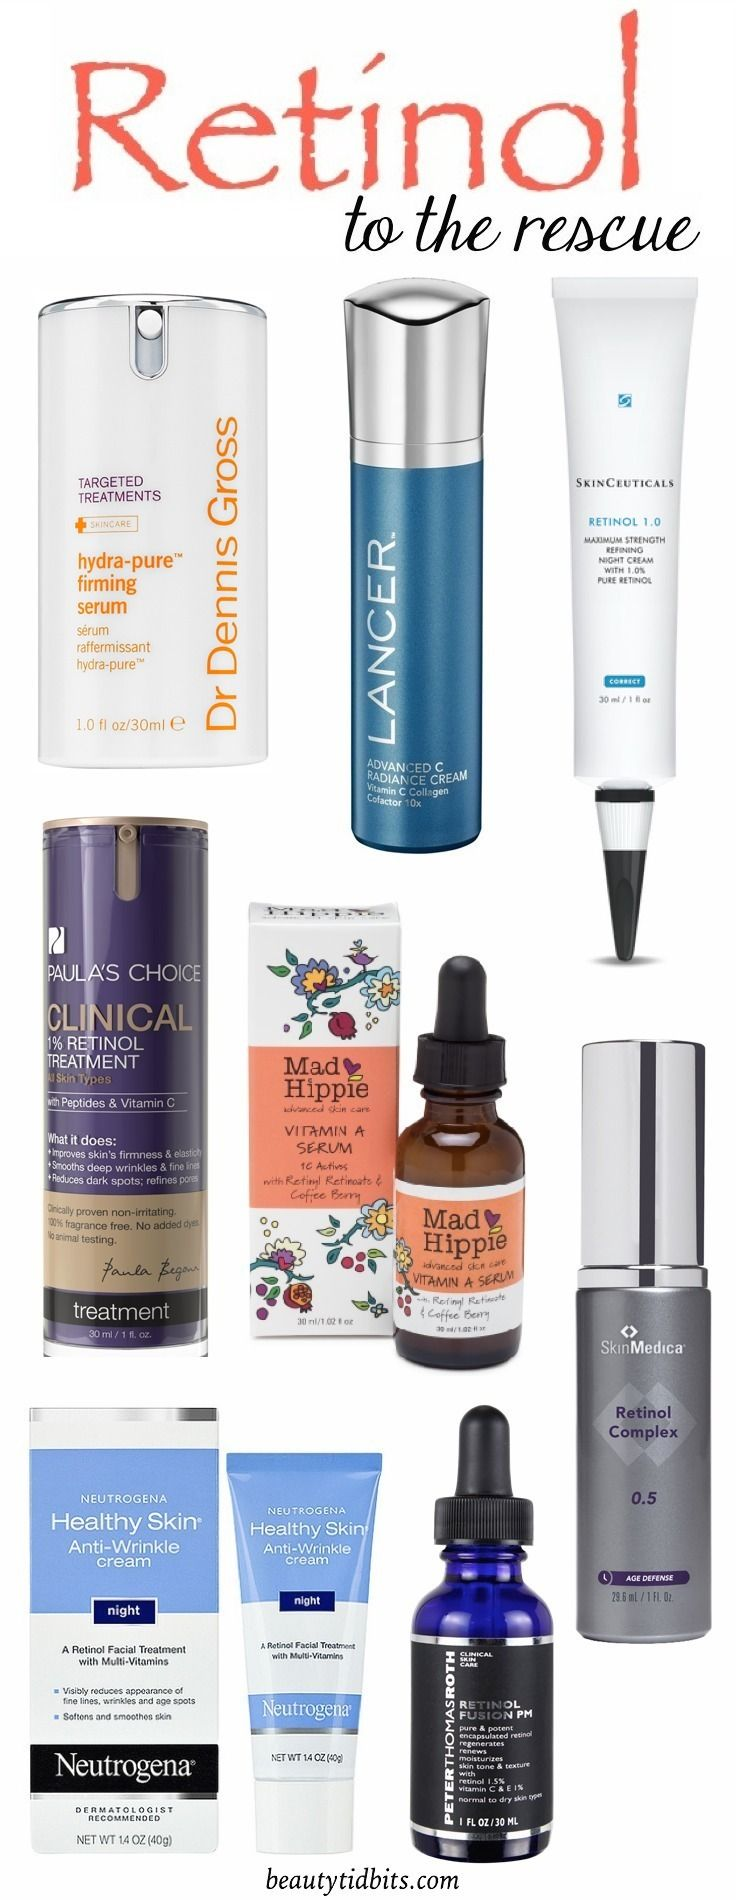 Sun damage and wrinkles that won't go away? Check out these best OTC retinol products that pack a powerful punch against all your skin woes and take off years your face!